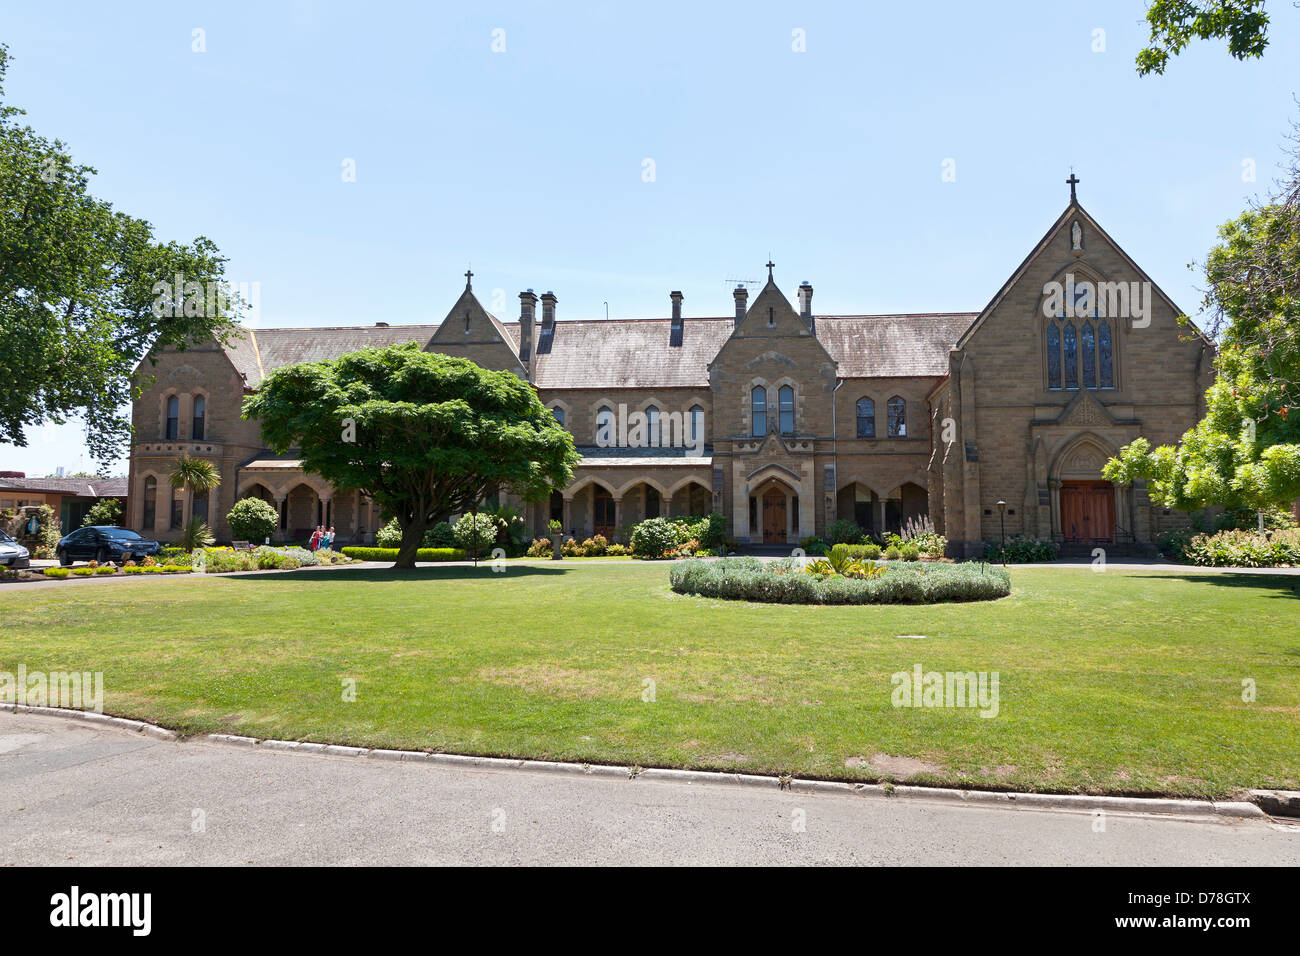 Windsor college in Melbourne, Australia - Stock Image